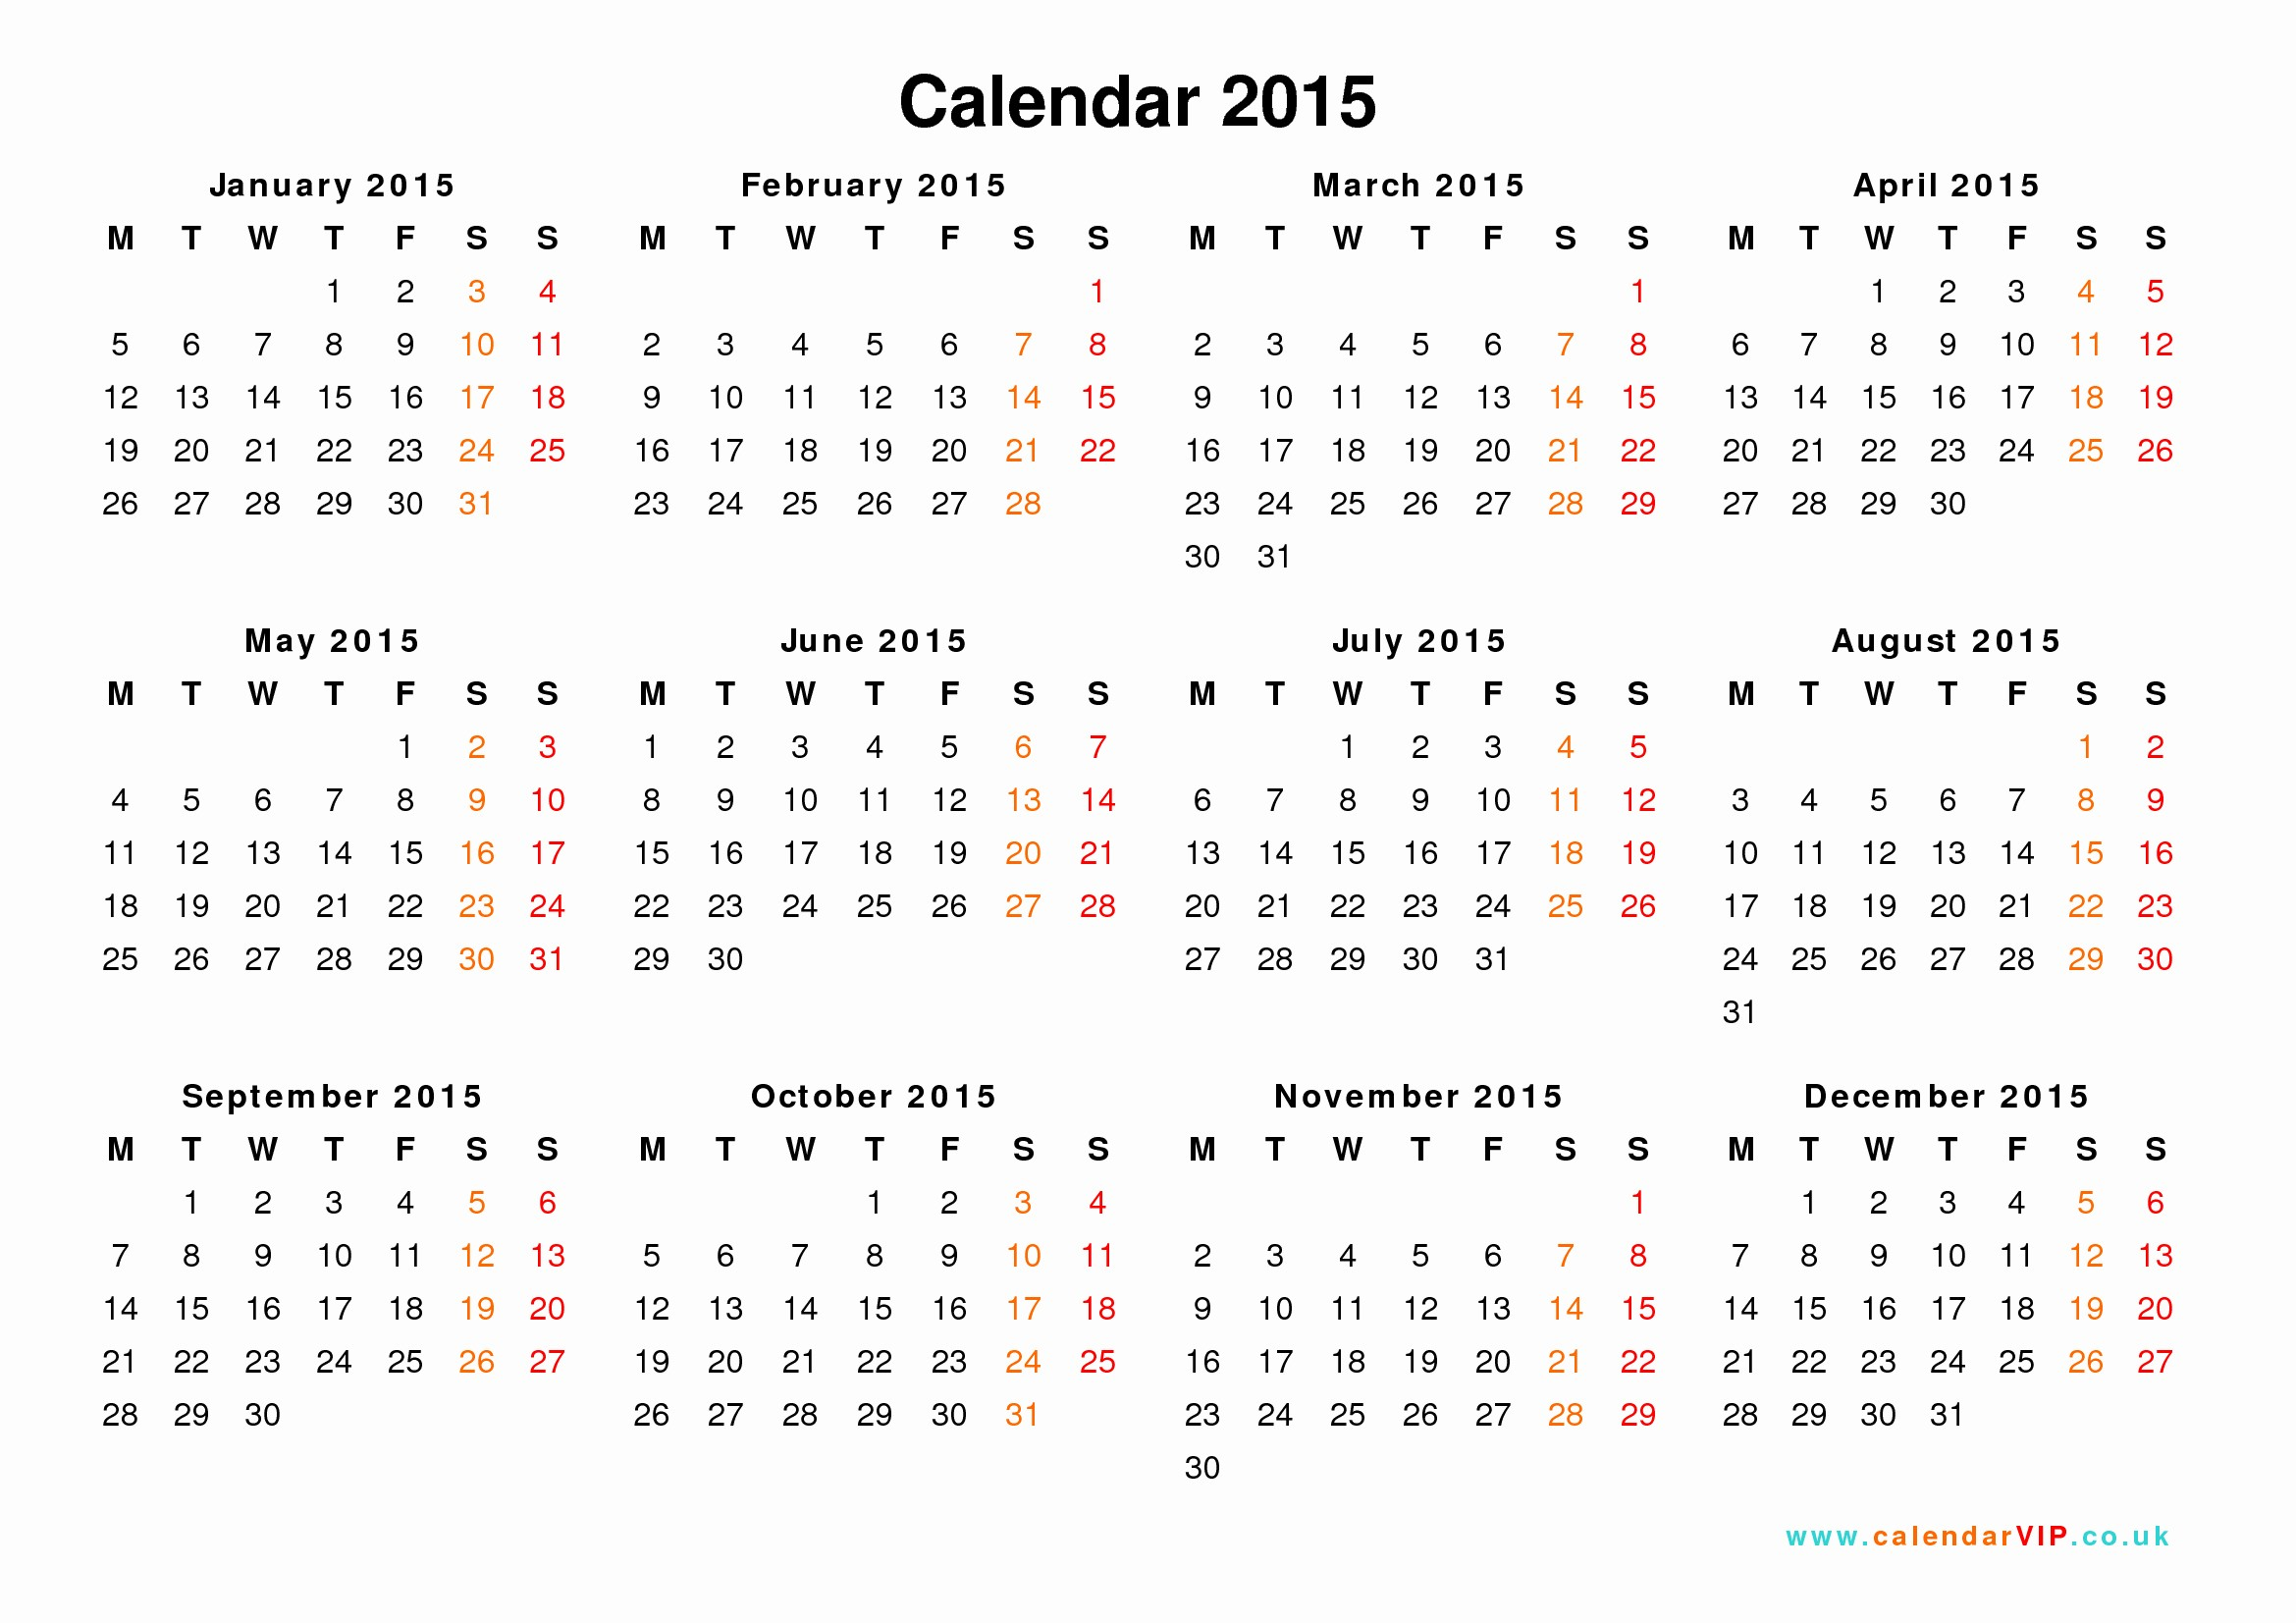 Free Yearly Calendar Templates 2015 Lovely Calendar 2015 Uk Free Yearly Calendar Templates for Uk